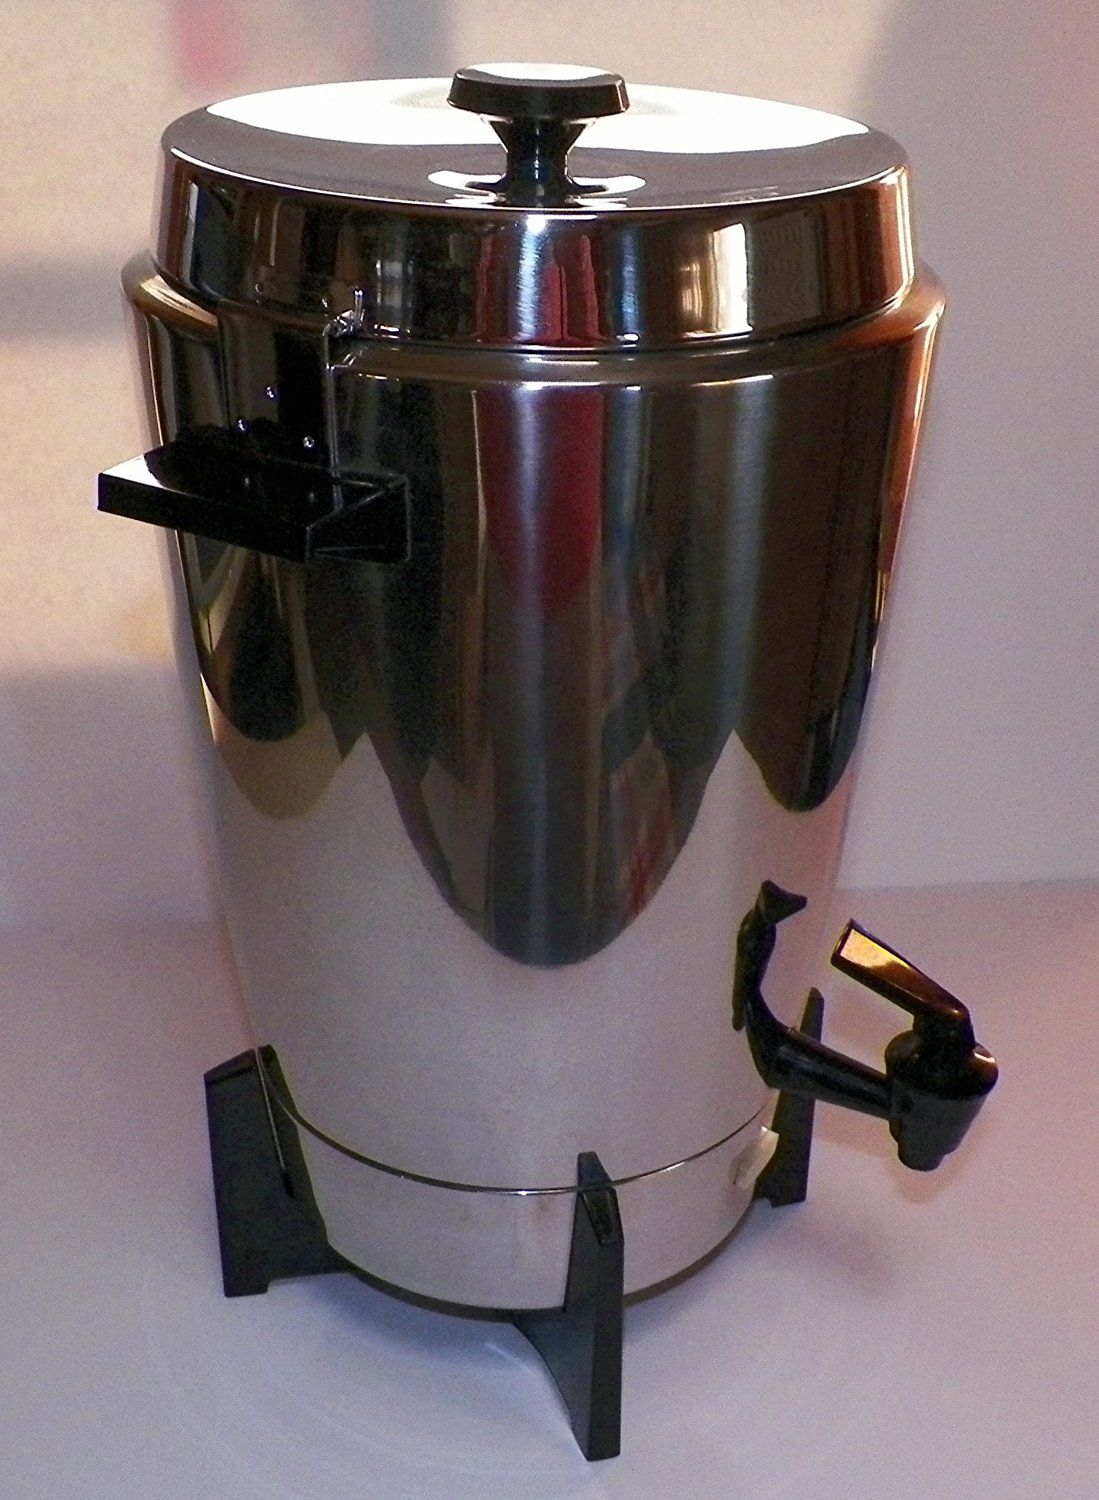 West Bend Stainless Steel 30 Cup Coffeemaker No 59013 Wow I Love This Check It Out Now Coffee Maker